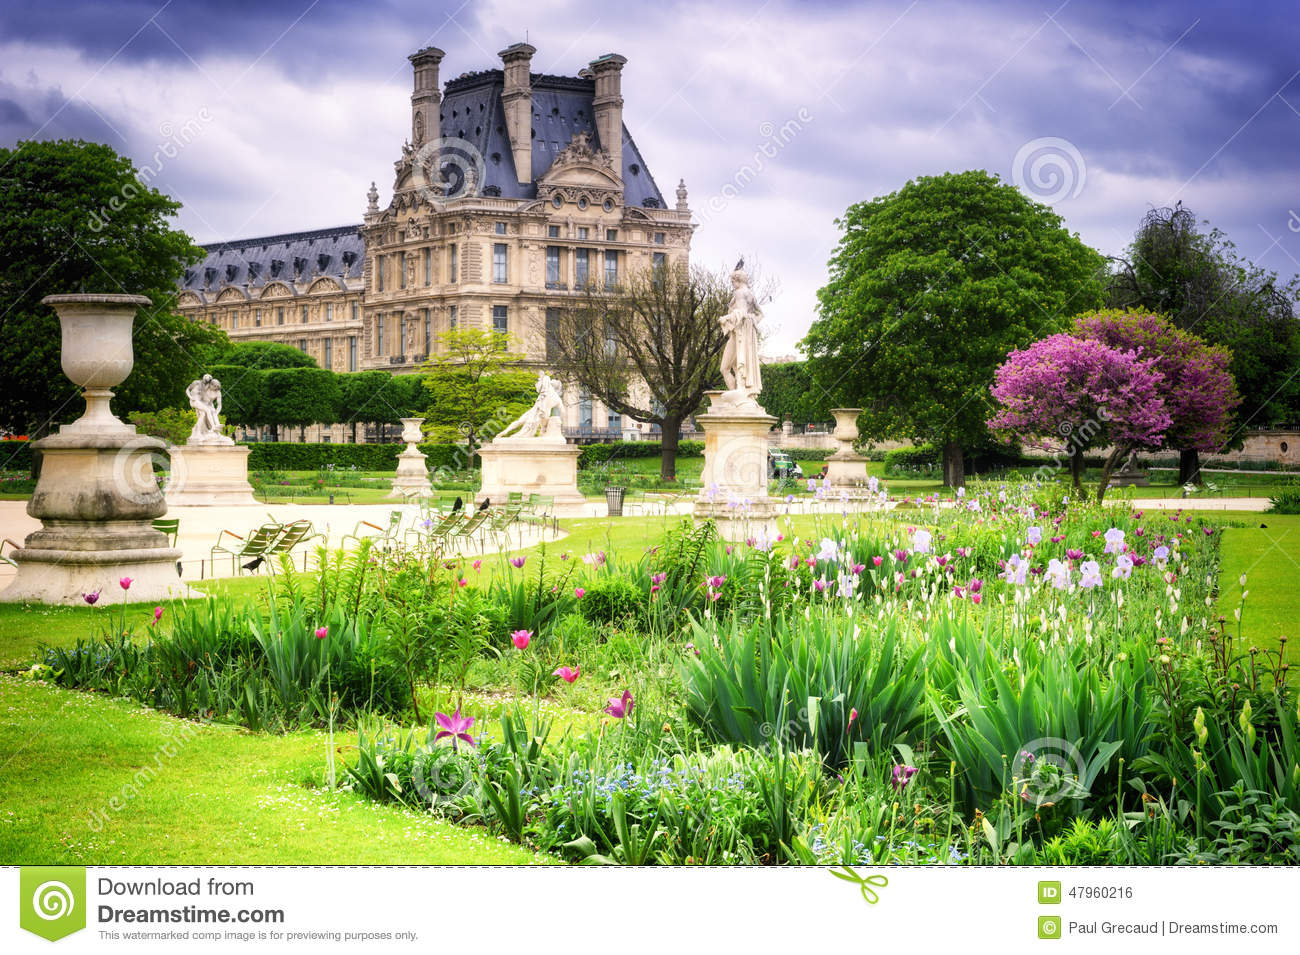 Louvre palace and tuileries garden paris france stock - Sculpture jardin des tuileries ...